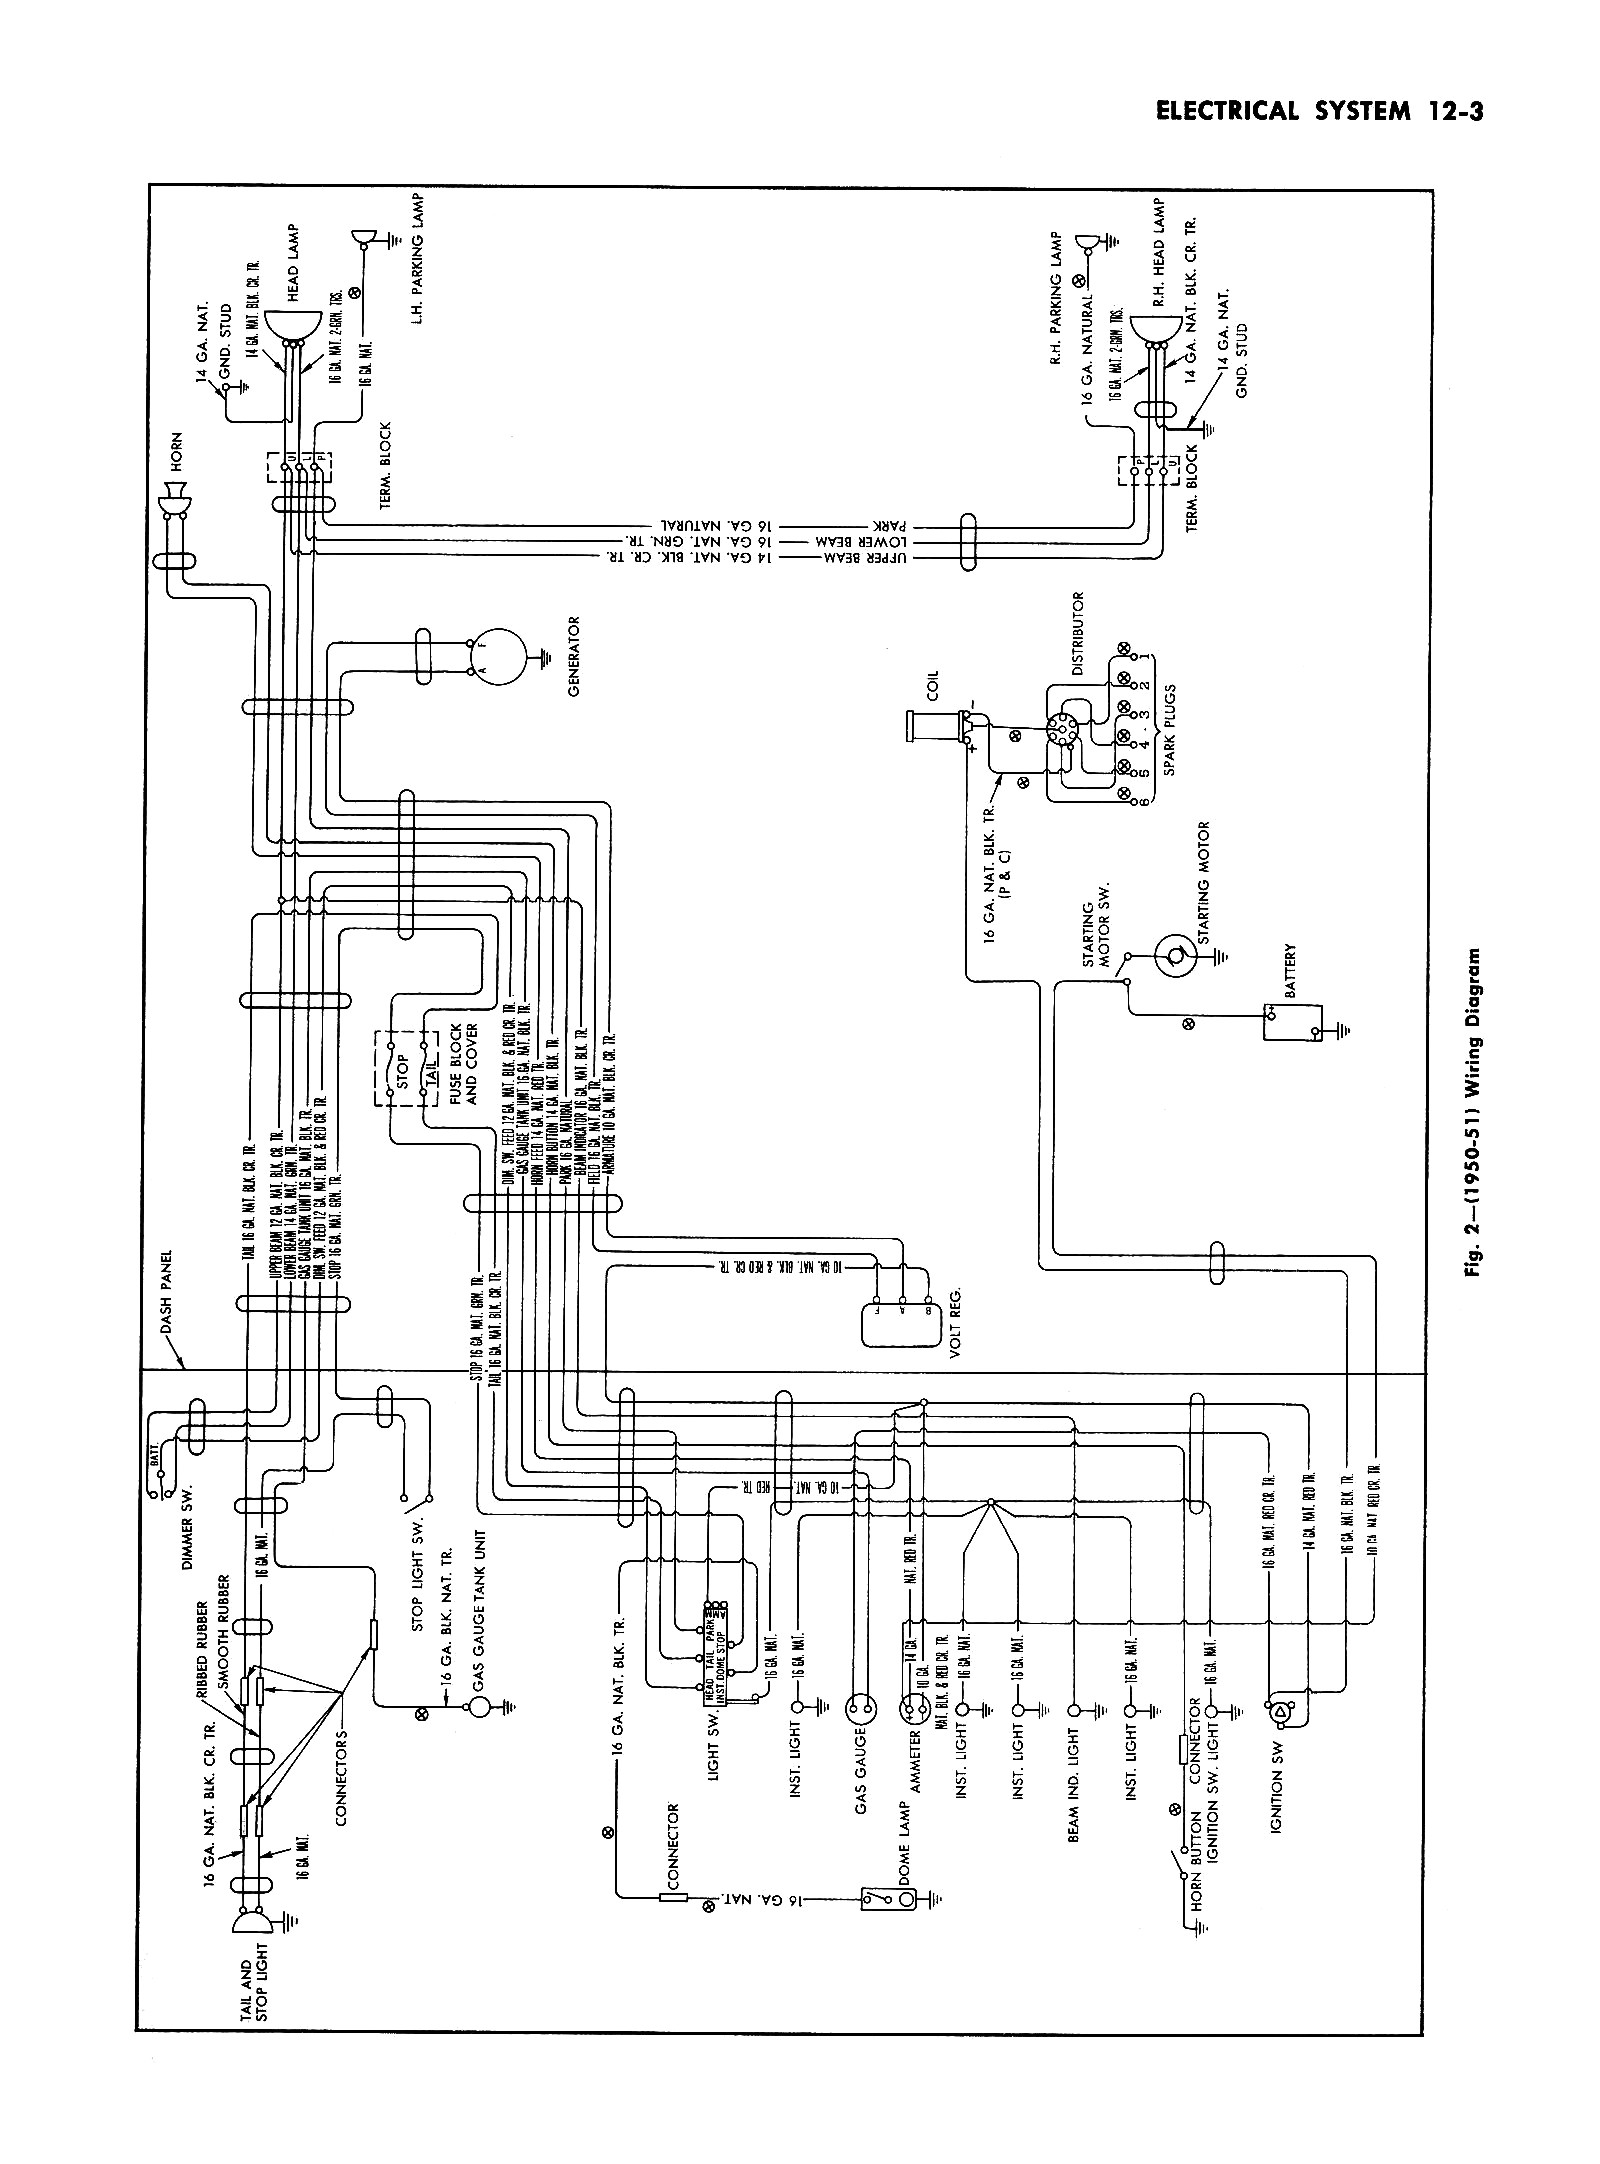 ididit turn signal switch wiring diagram dakota digital ididit wiring harness time delay switch wiring diagram [ 1600 x 2164 Pixel ]